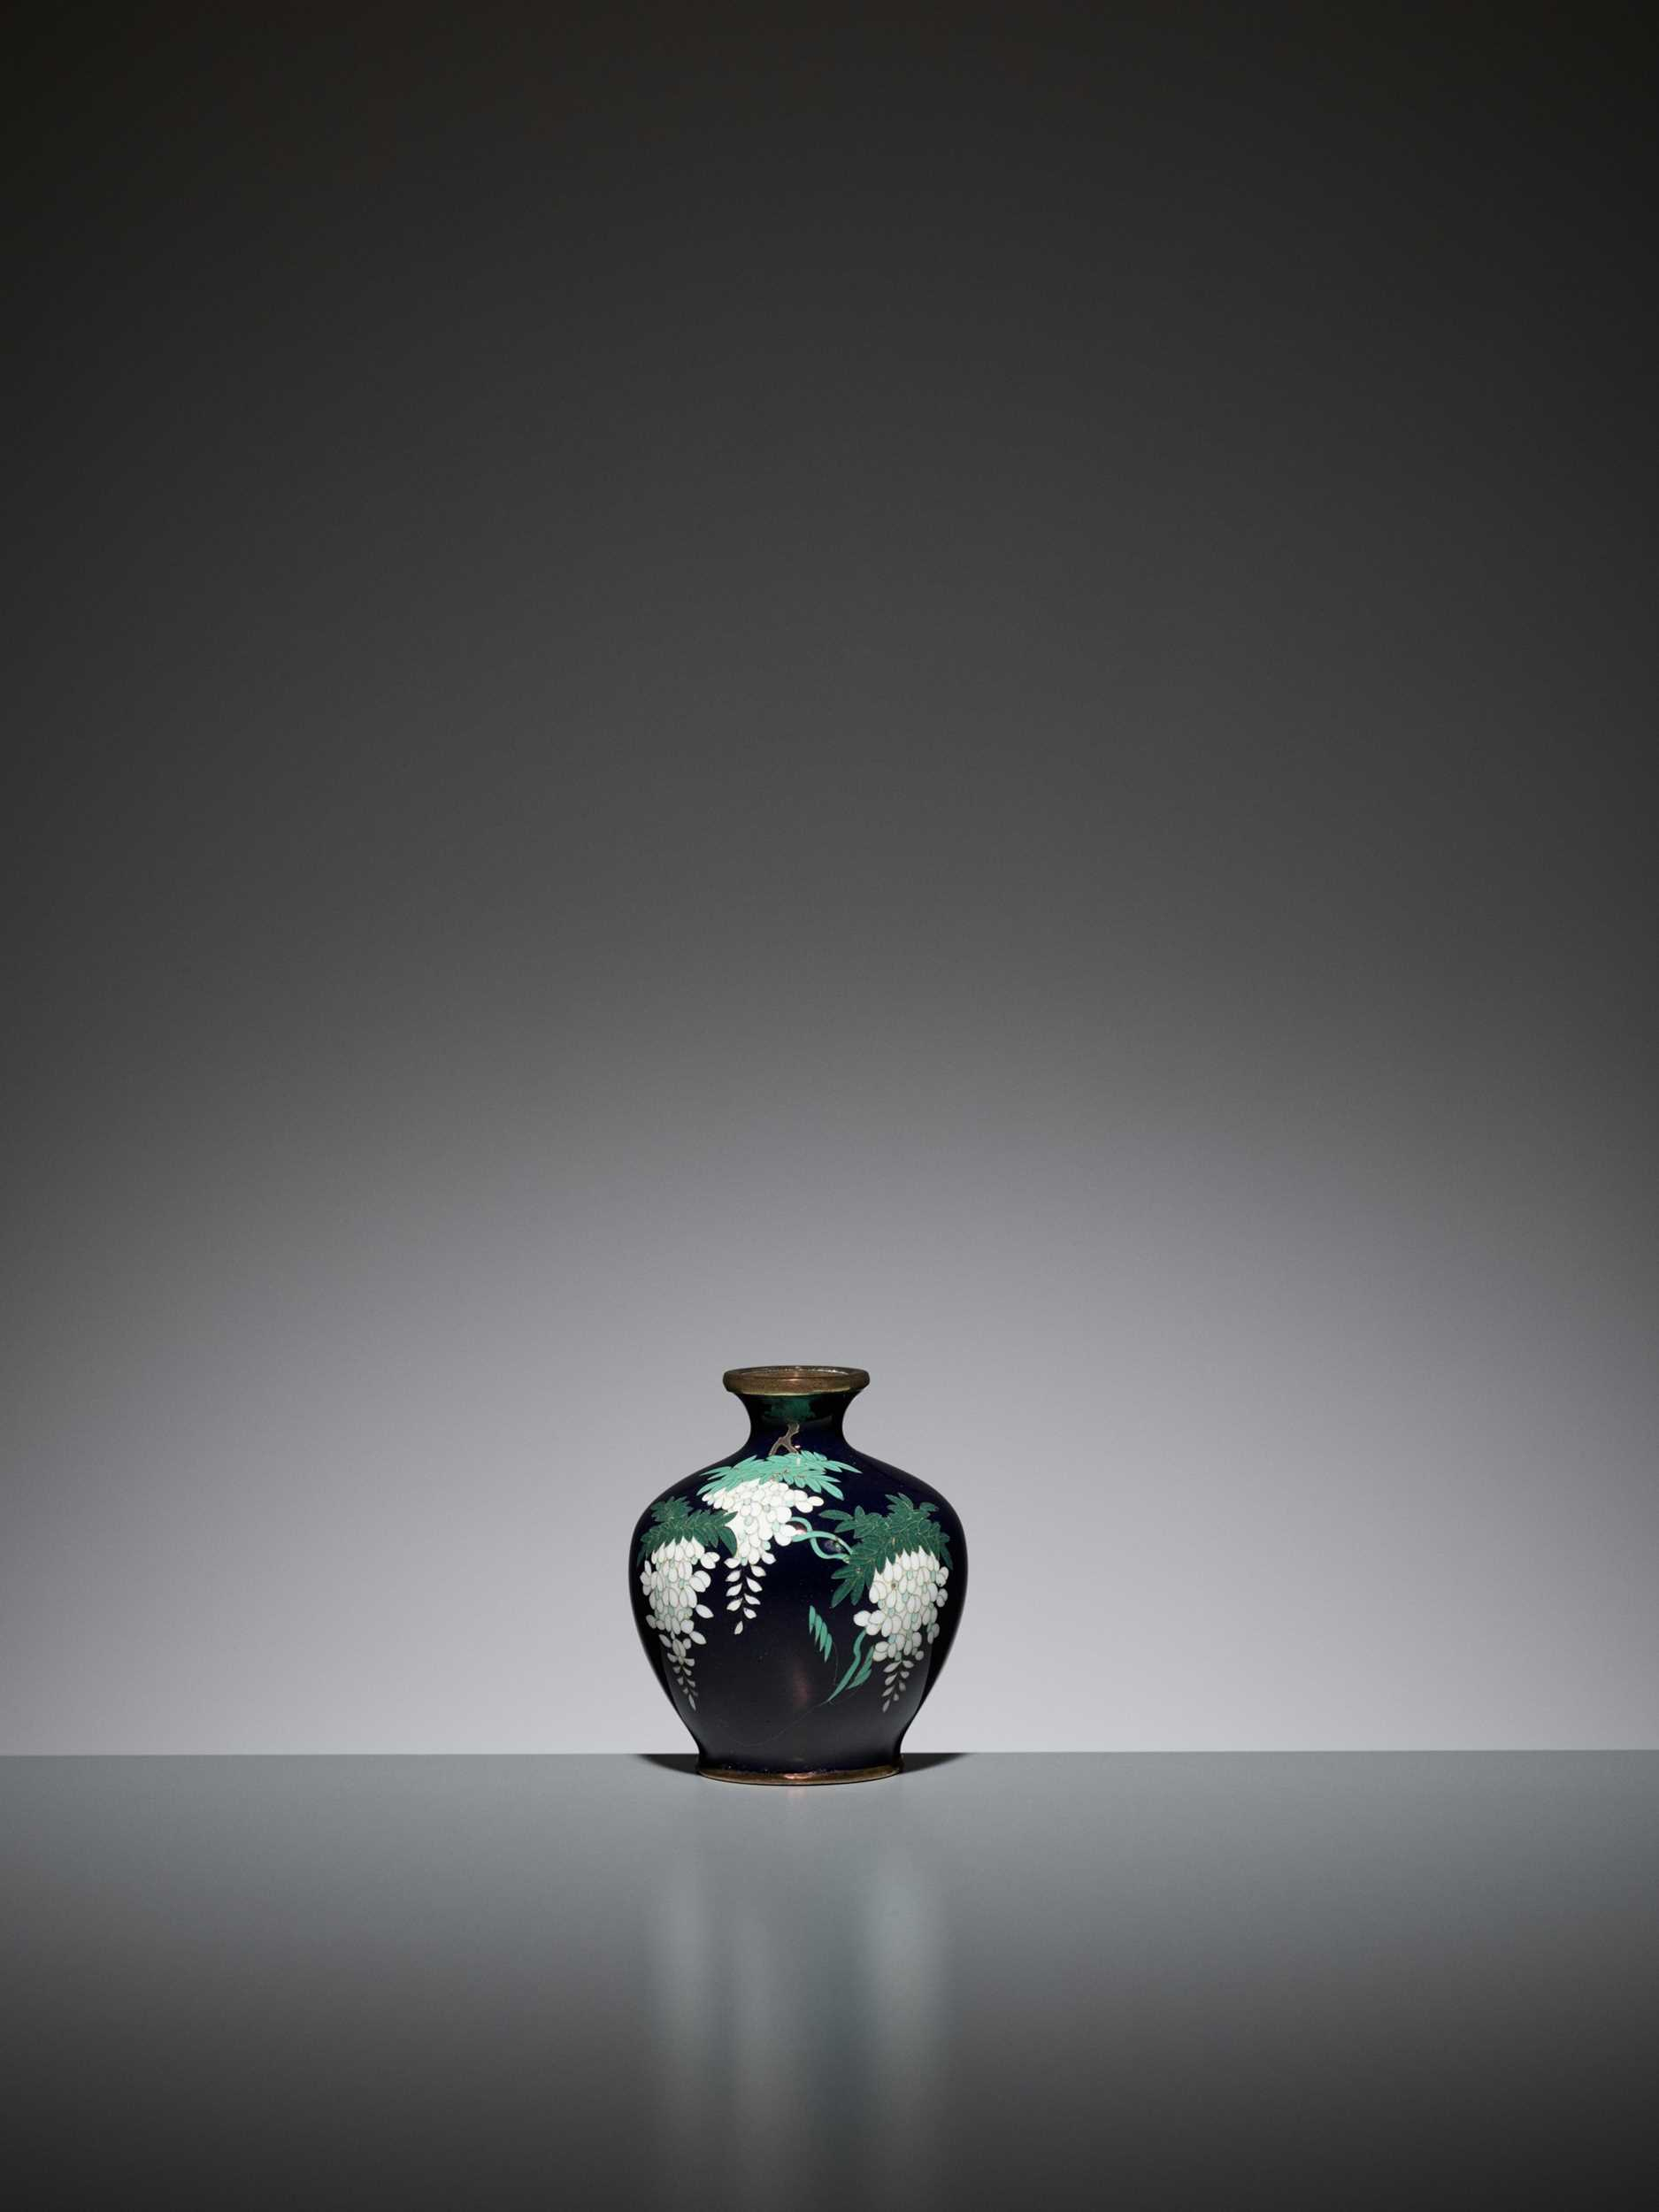 Lot 72 - A SMALL MIDNIGHT BLUE CLOISONNÉ ENAMEL VASE WITH WISTERIA